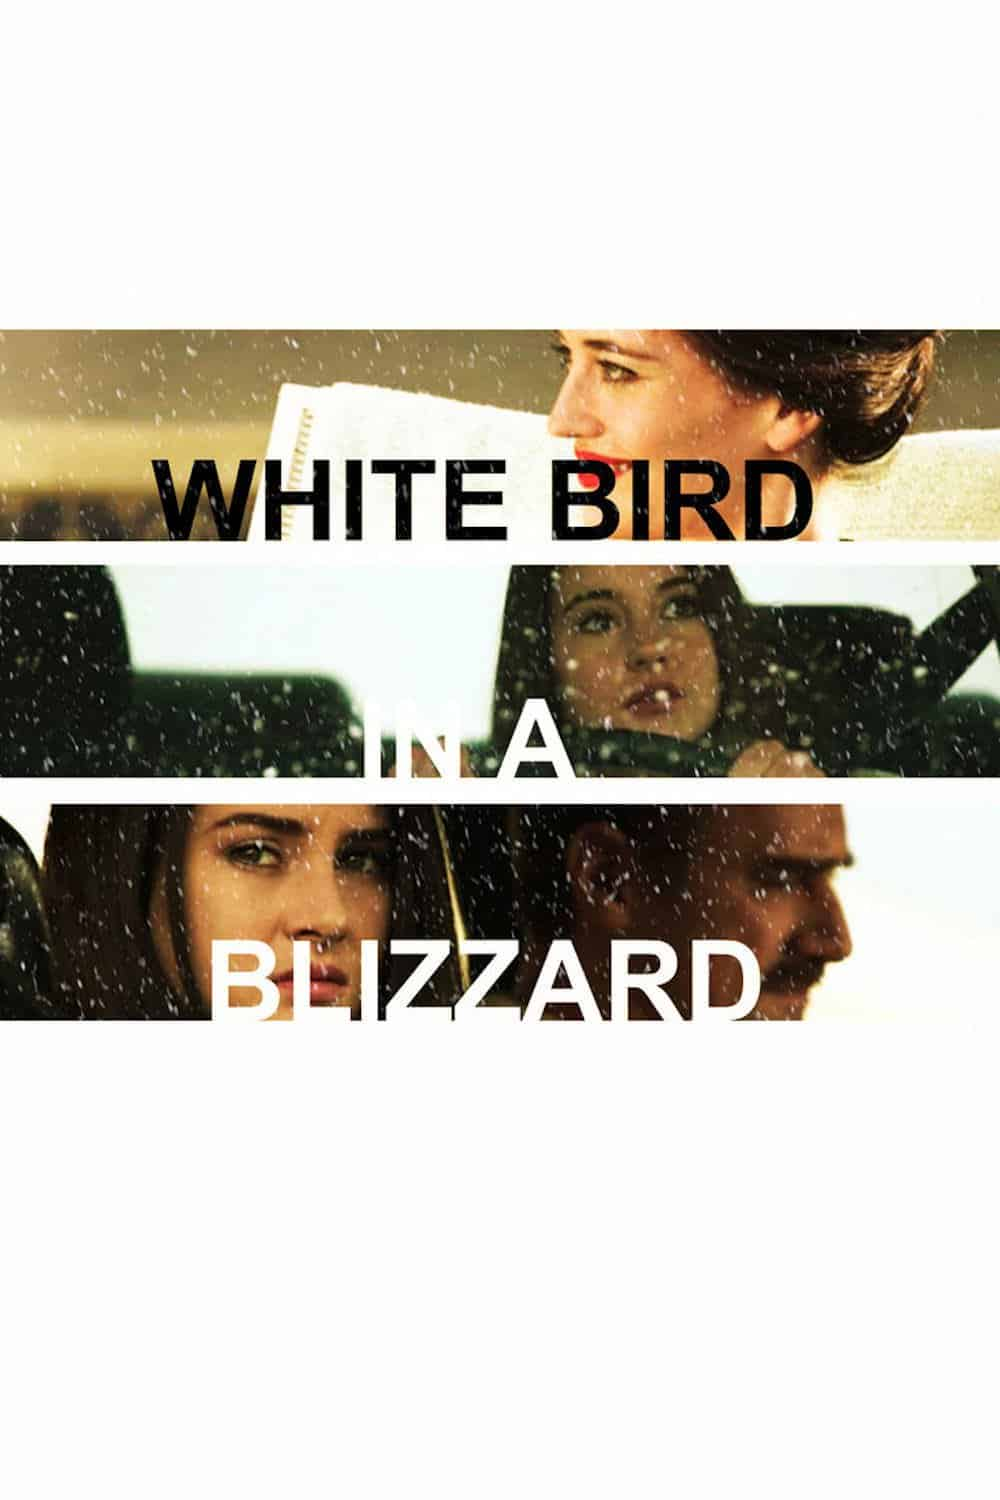 White Bird in a Blizzard, 2014